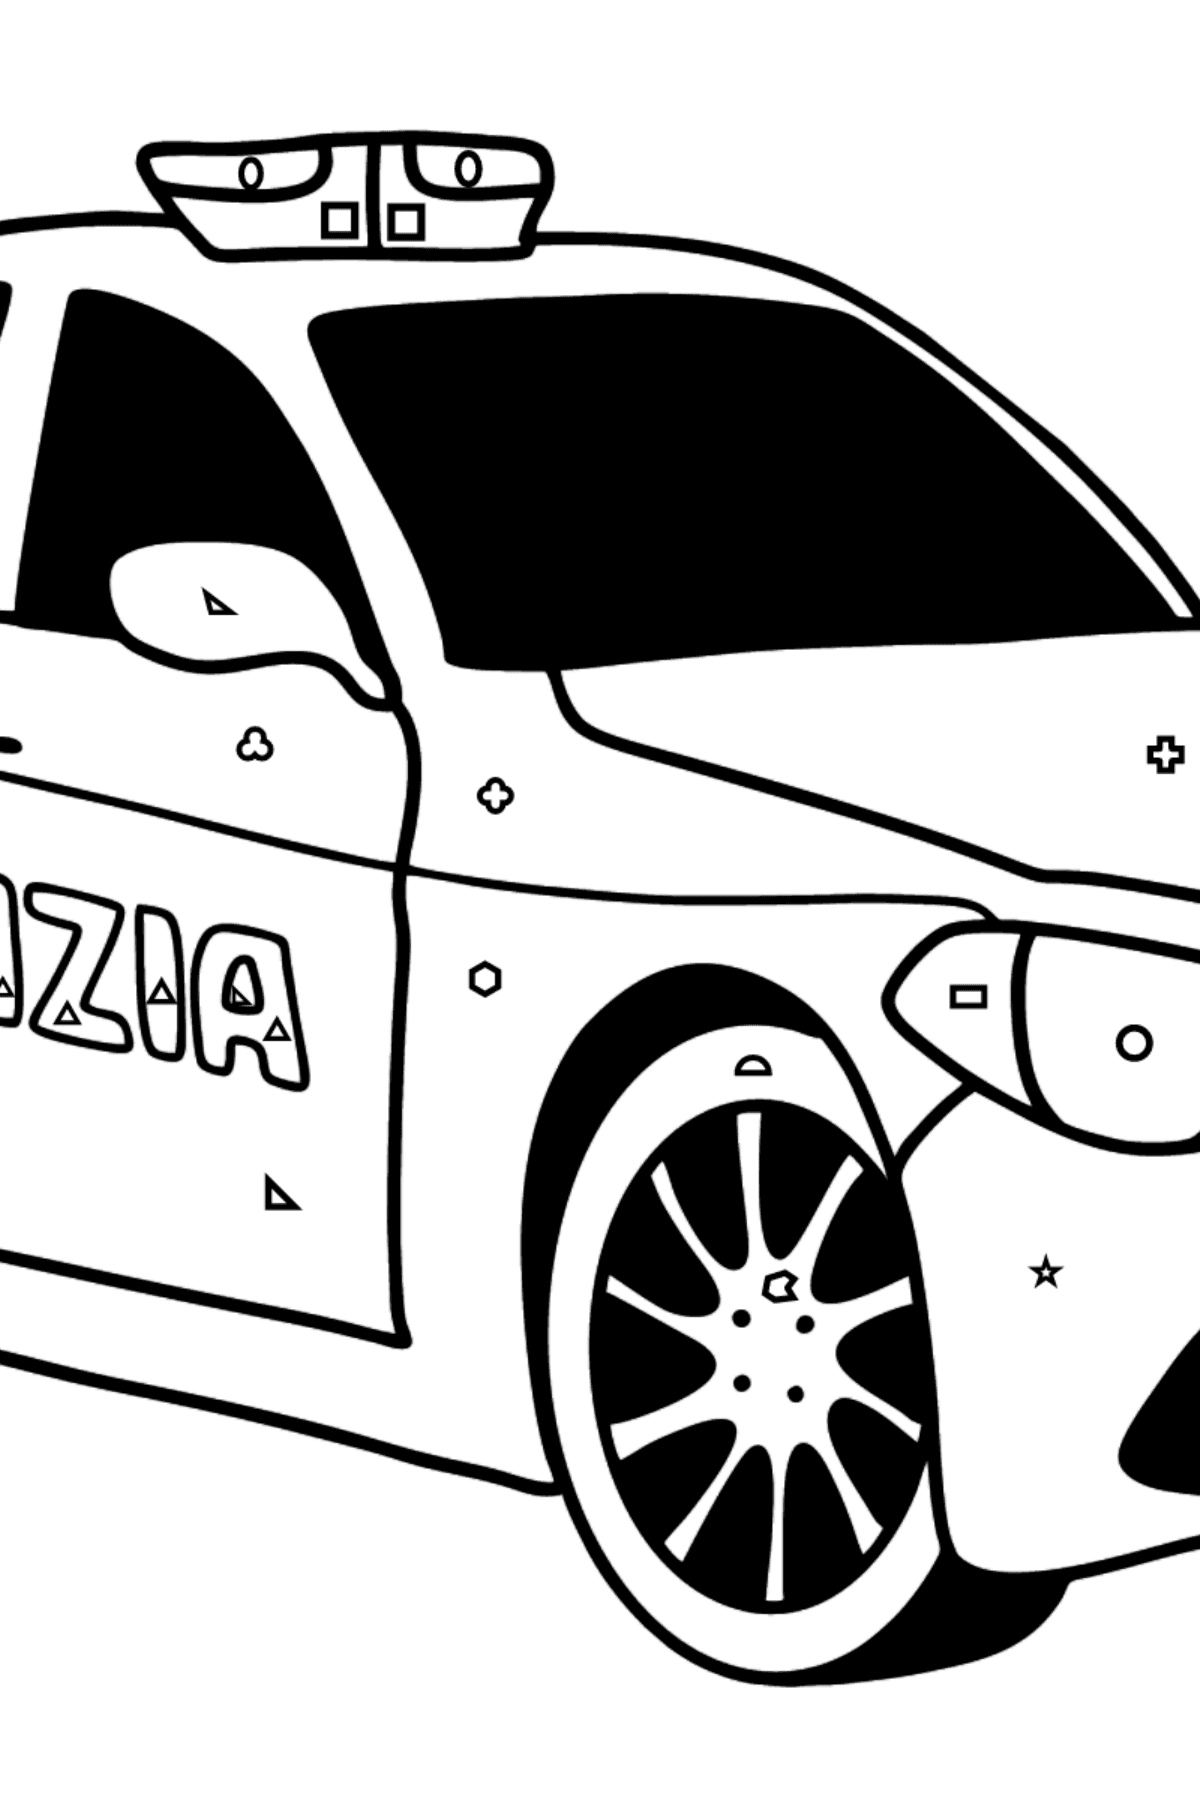 Police Car in Italy coloring page - Coloring by Geometric Shapes for Kids